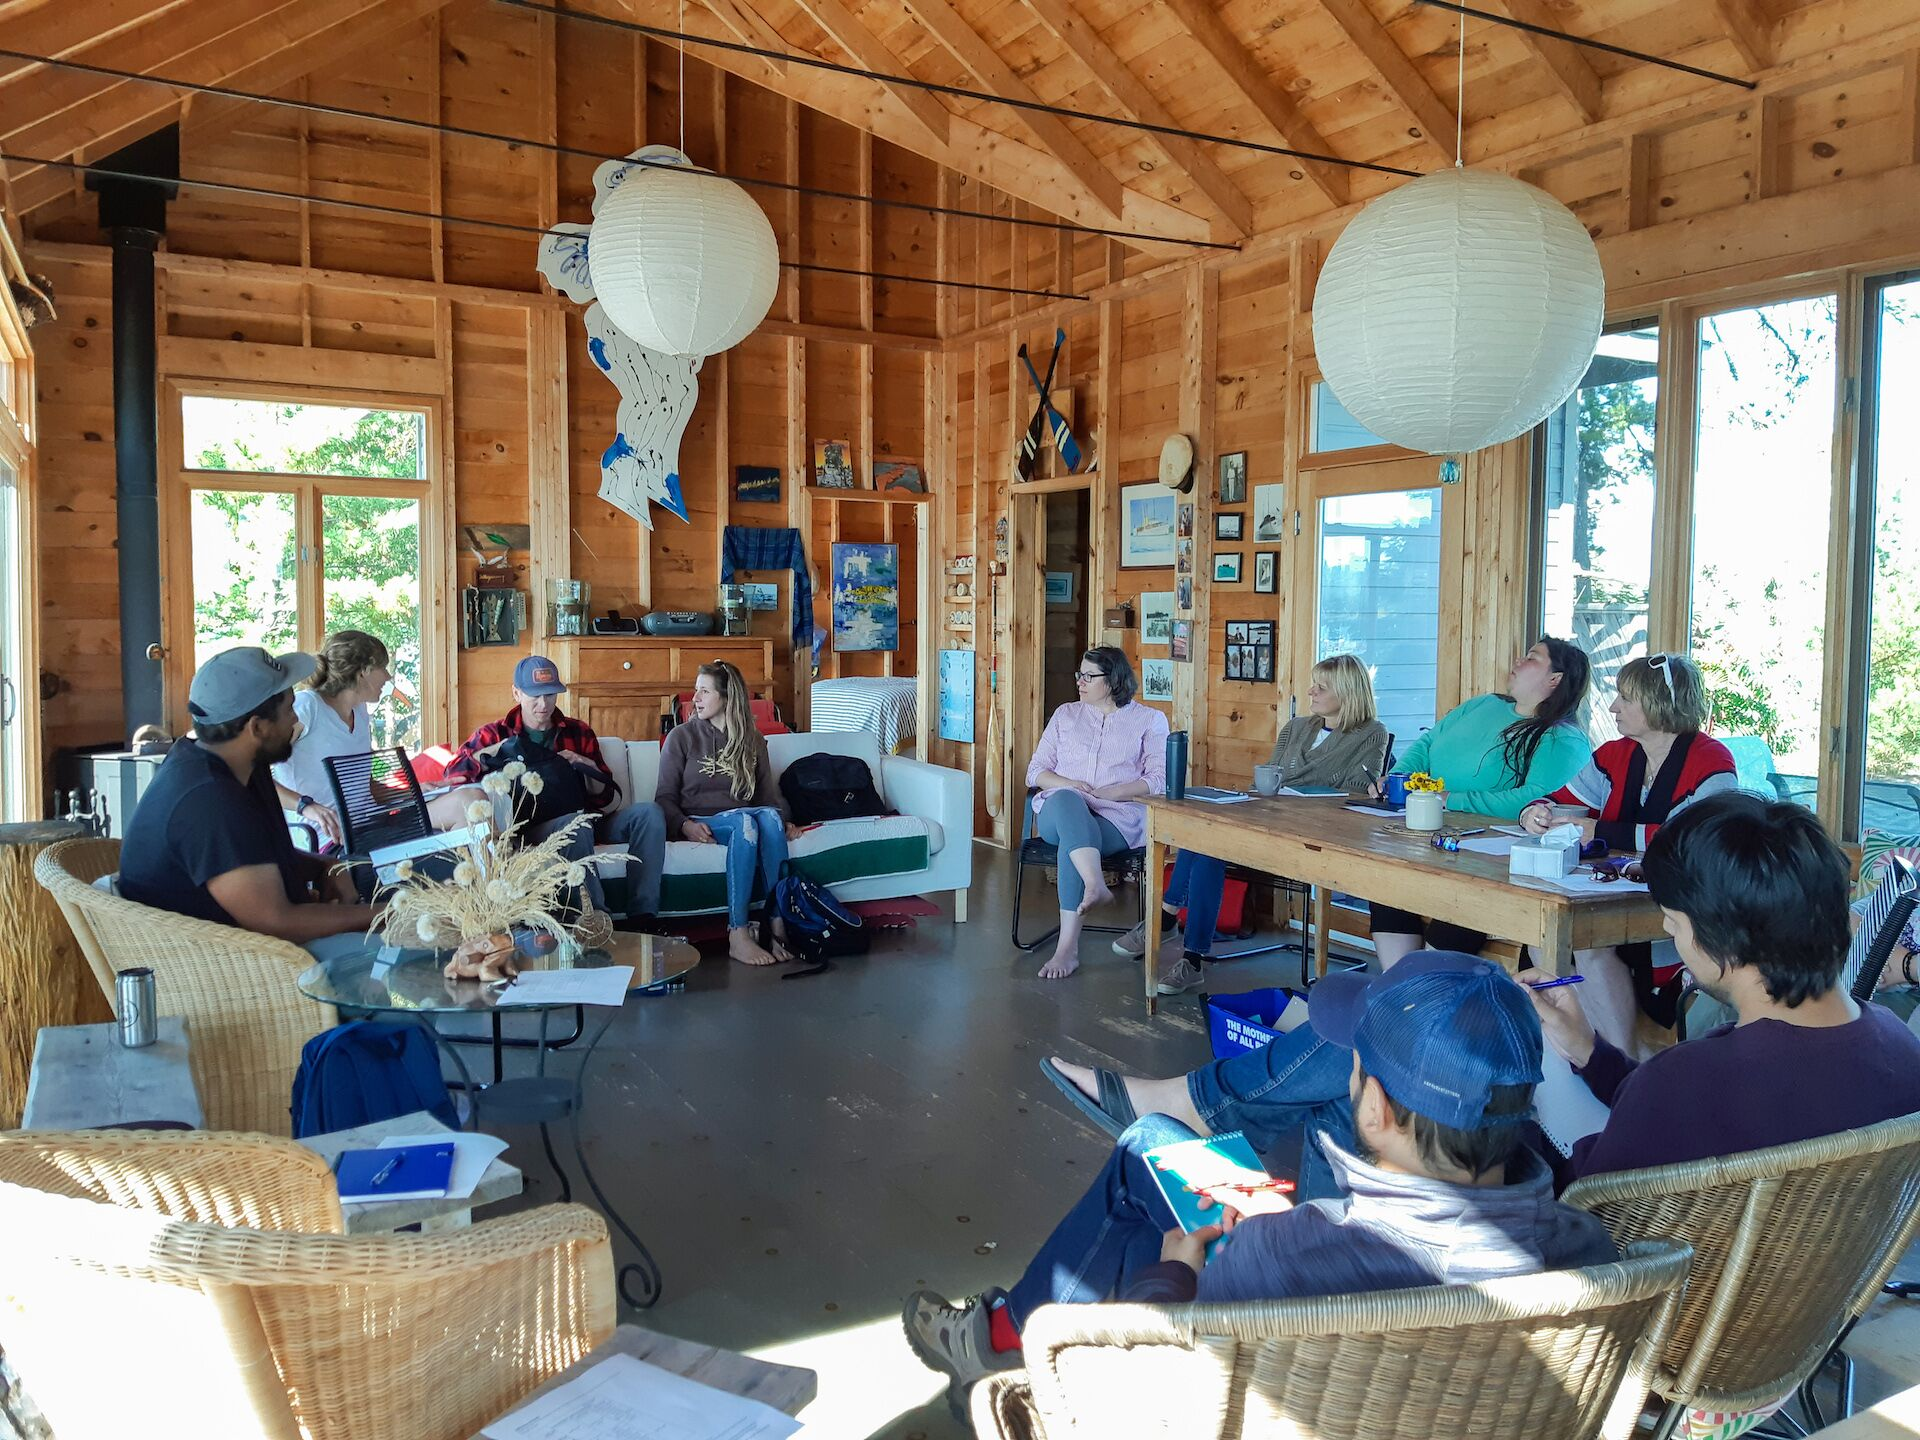 A group of people sitting in a circle in a cabin for a group discussion at staff retreat funded by Dragonfly Fund Emotional Health and Well-Being grant program.